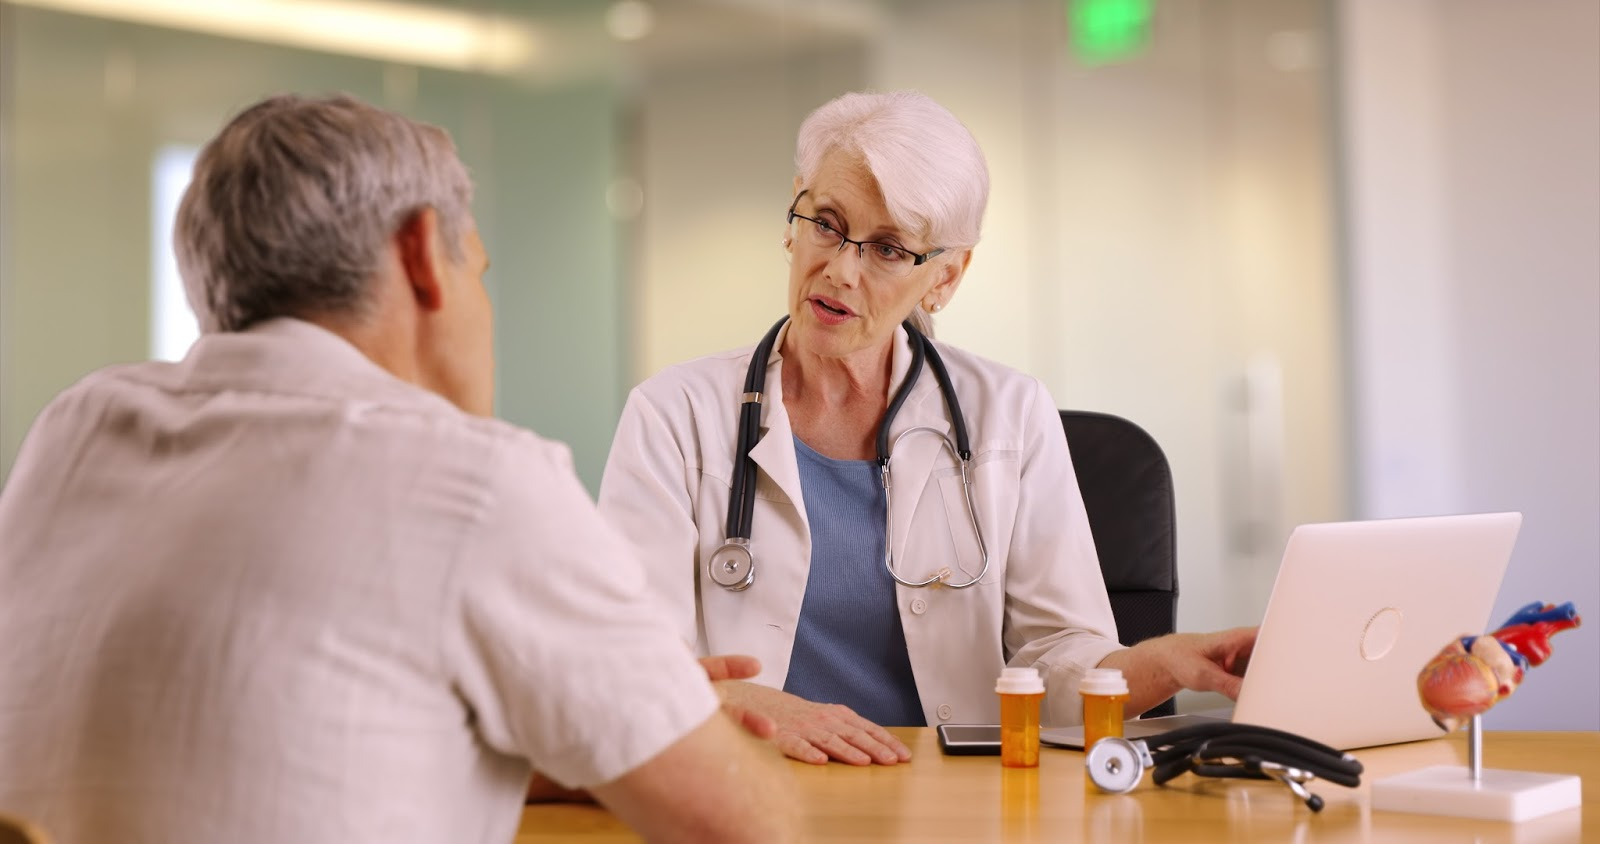 Older man consults with his doctor